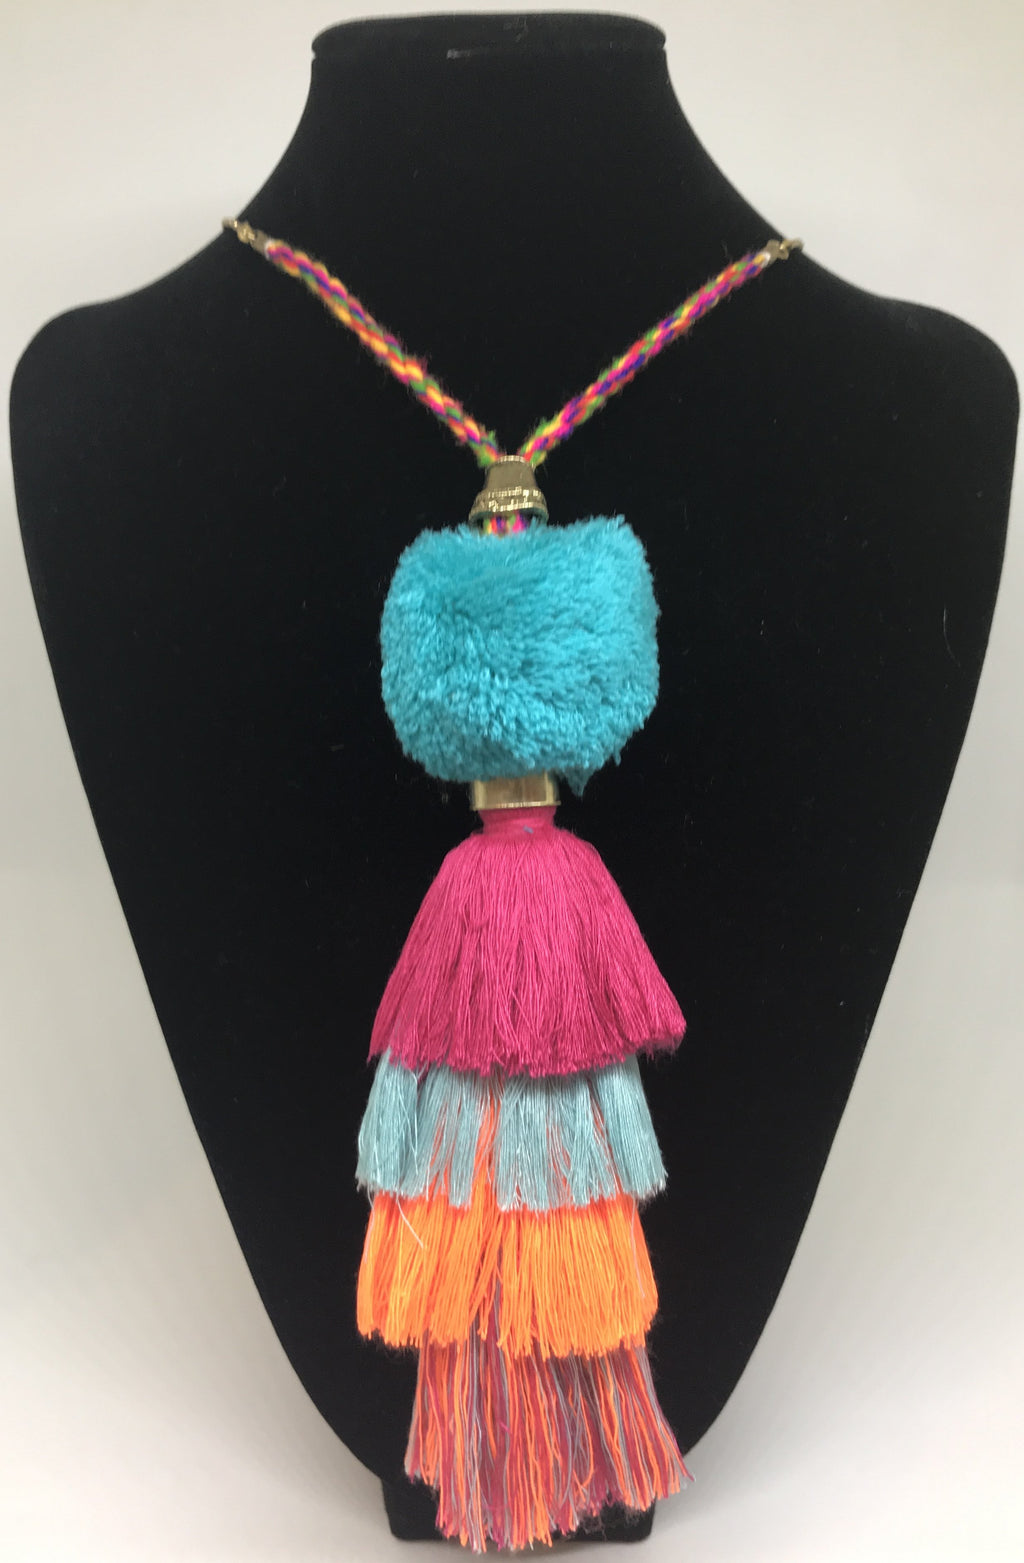 Vakation Tassle Necklace